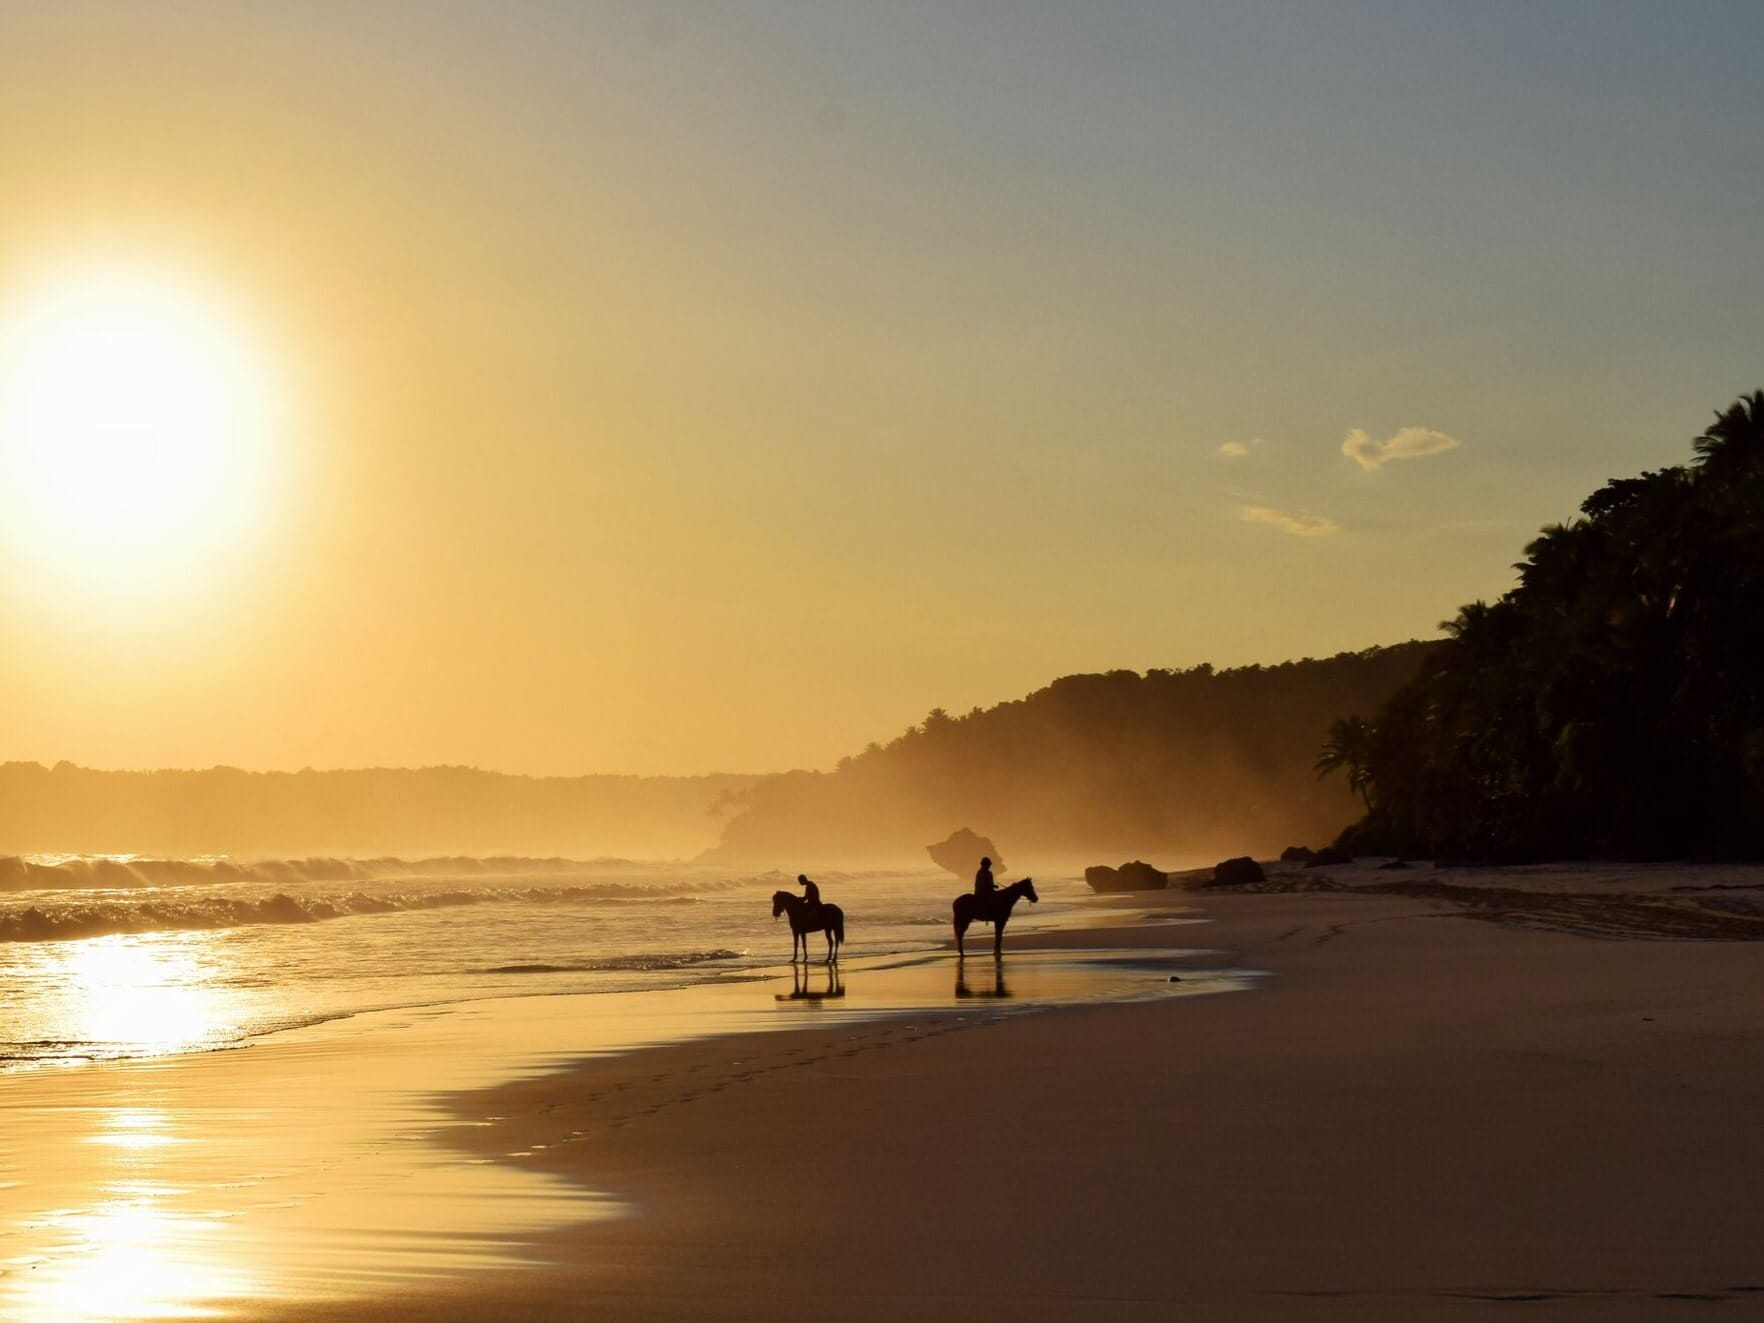 Silhouette of horses on the beach at sunset in Nihi Sumba